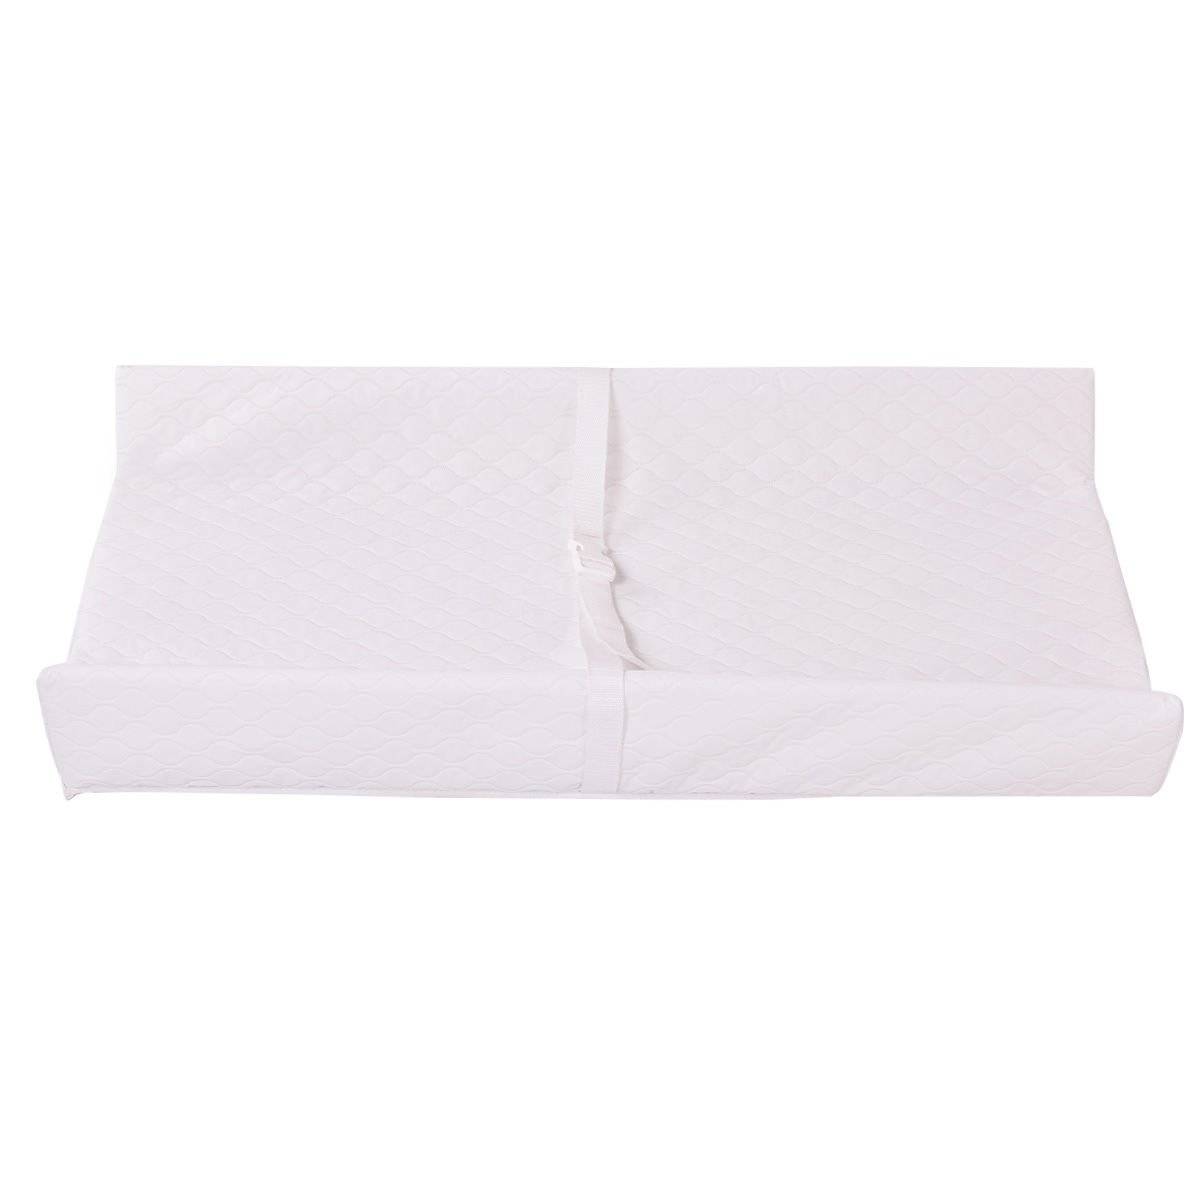 Costzon Infant Contoured Changing Pad 32'' Baby Diaper Nursery Cushion